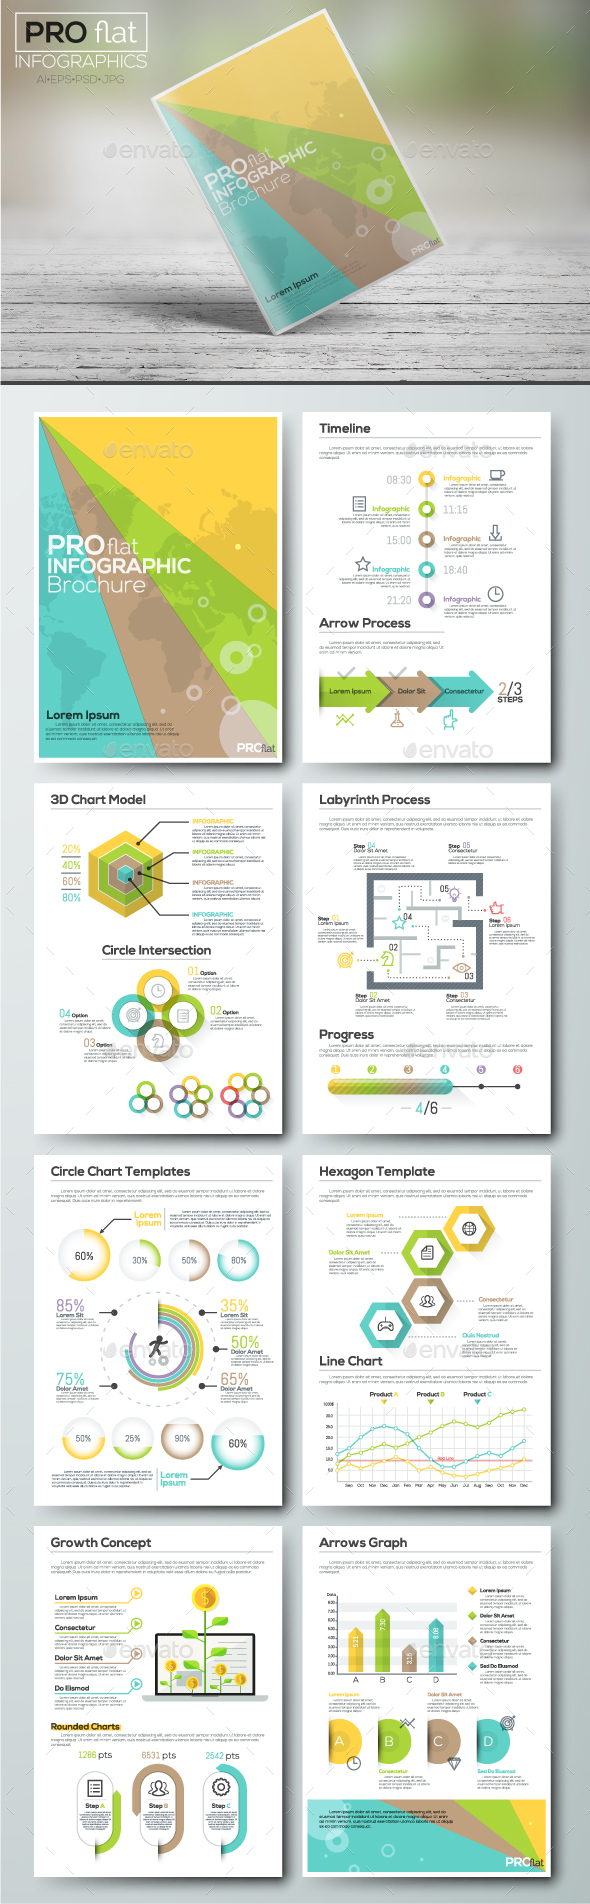 Pro Flat Infographic Brochure. Set 5 - Infographics